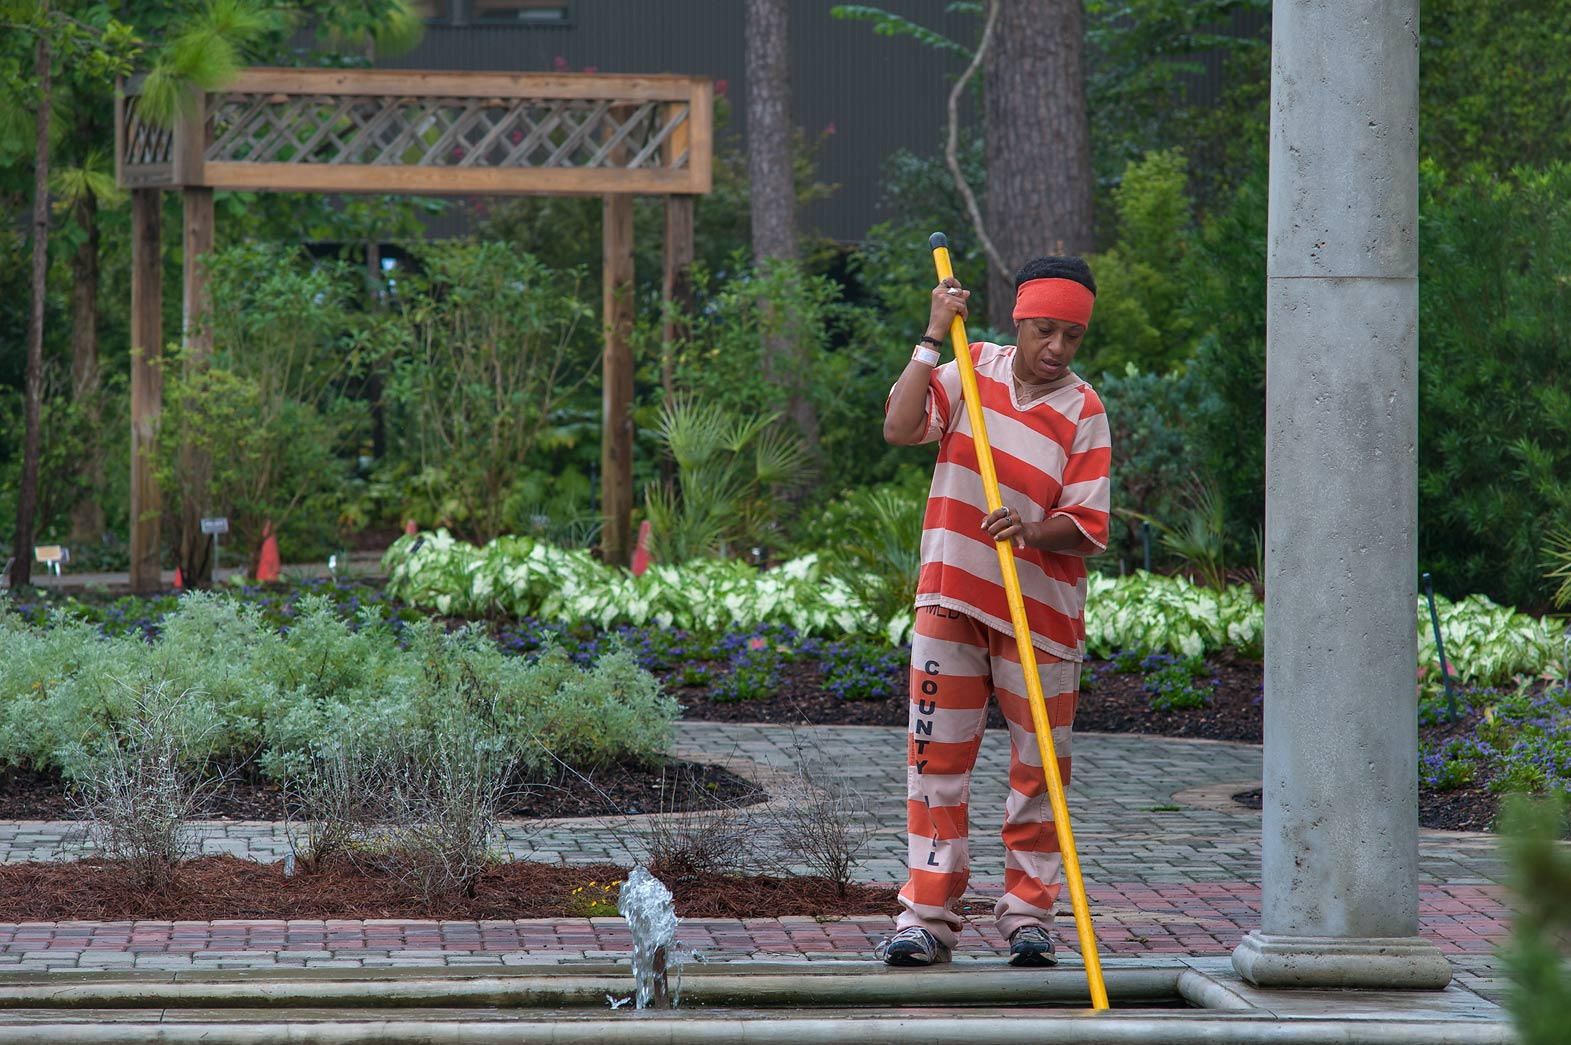 Prisoner taking care of flowers at morning in...Gardens. Humble (Houston area), Texas